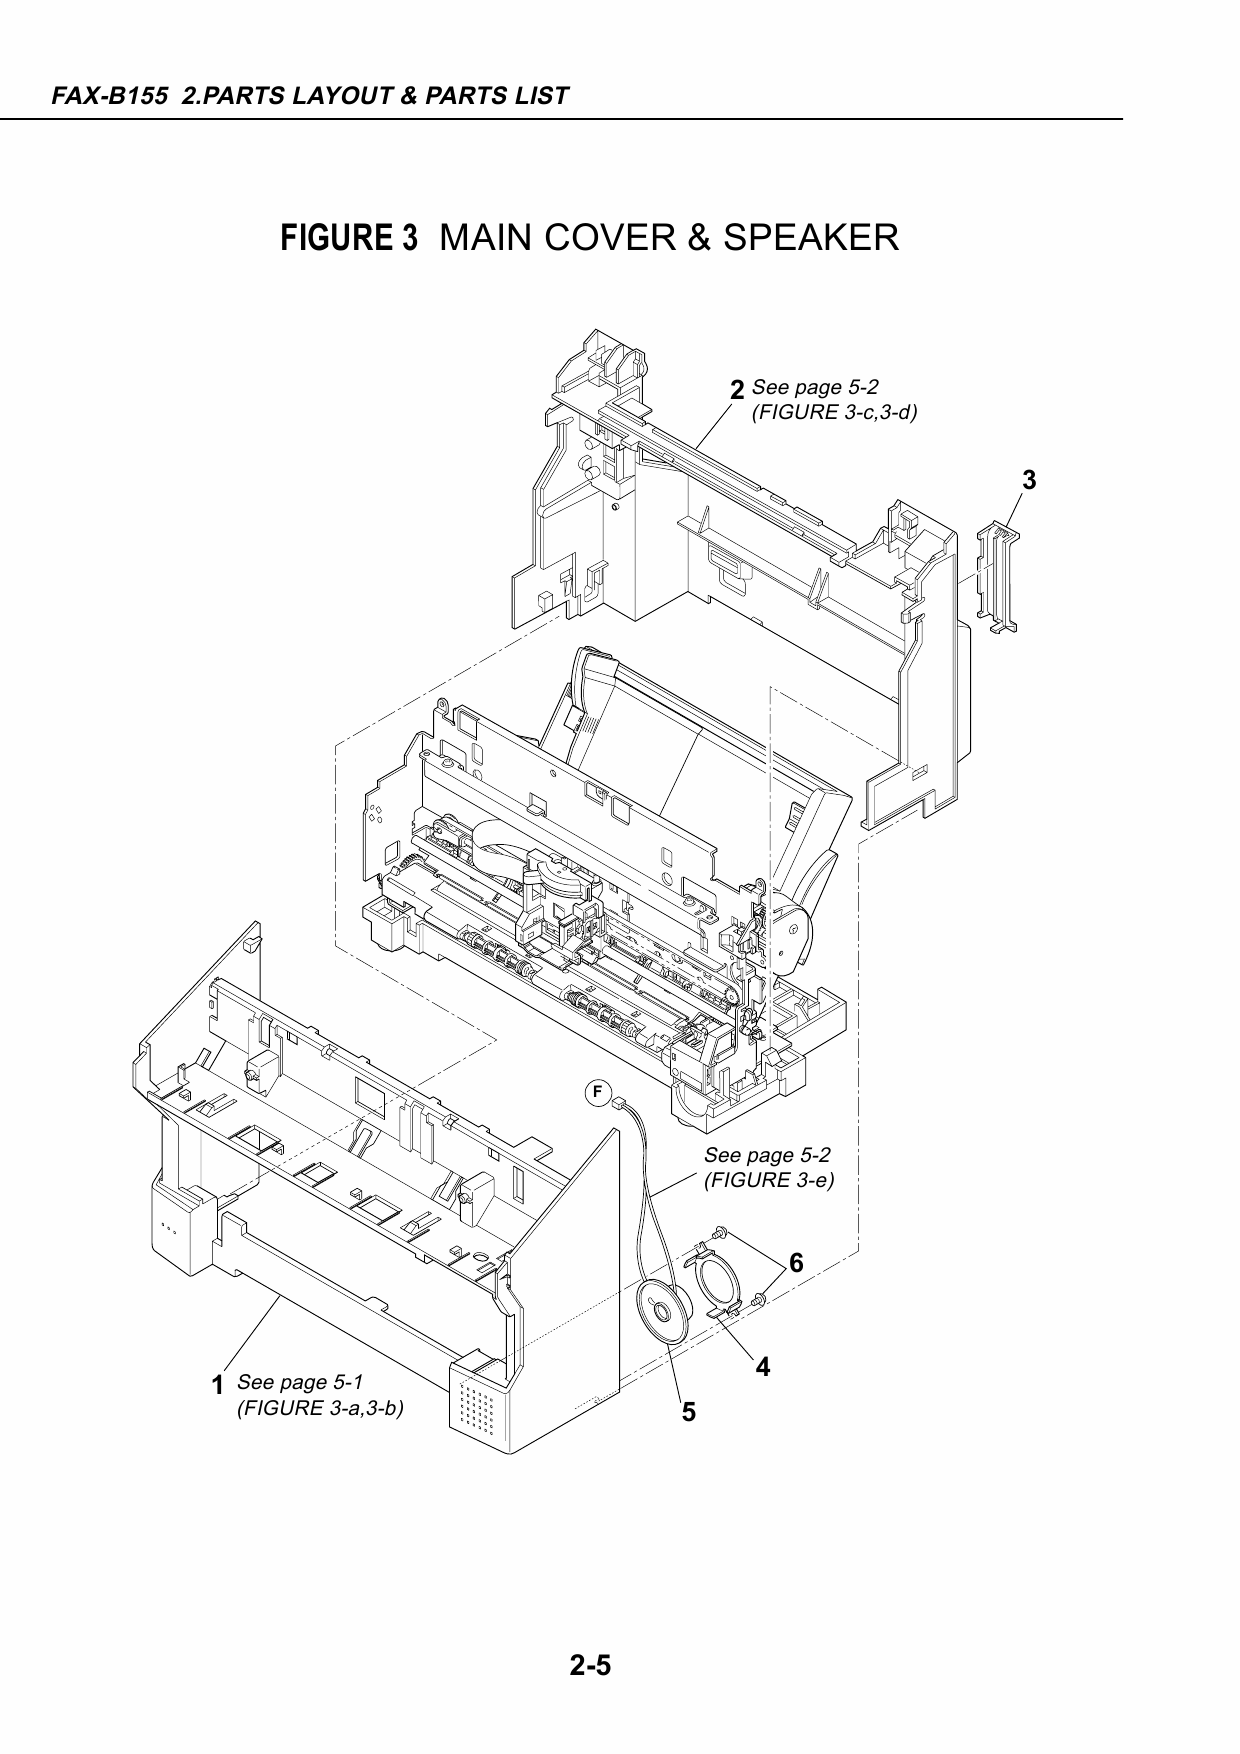 Canon FAX B155 Parts Catalog Manual